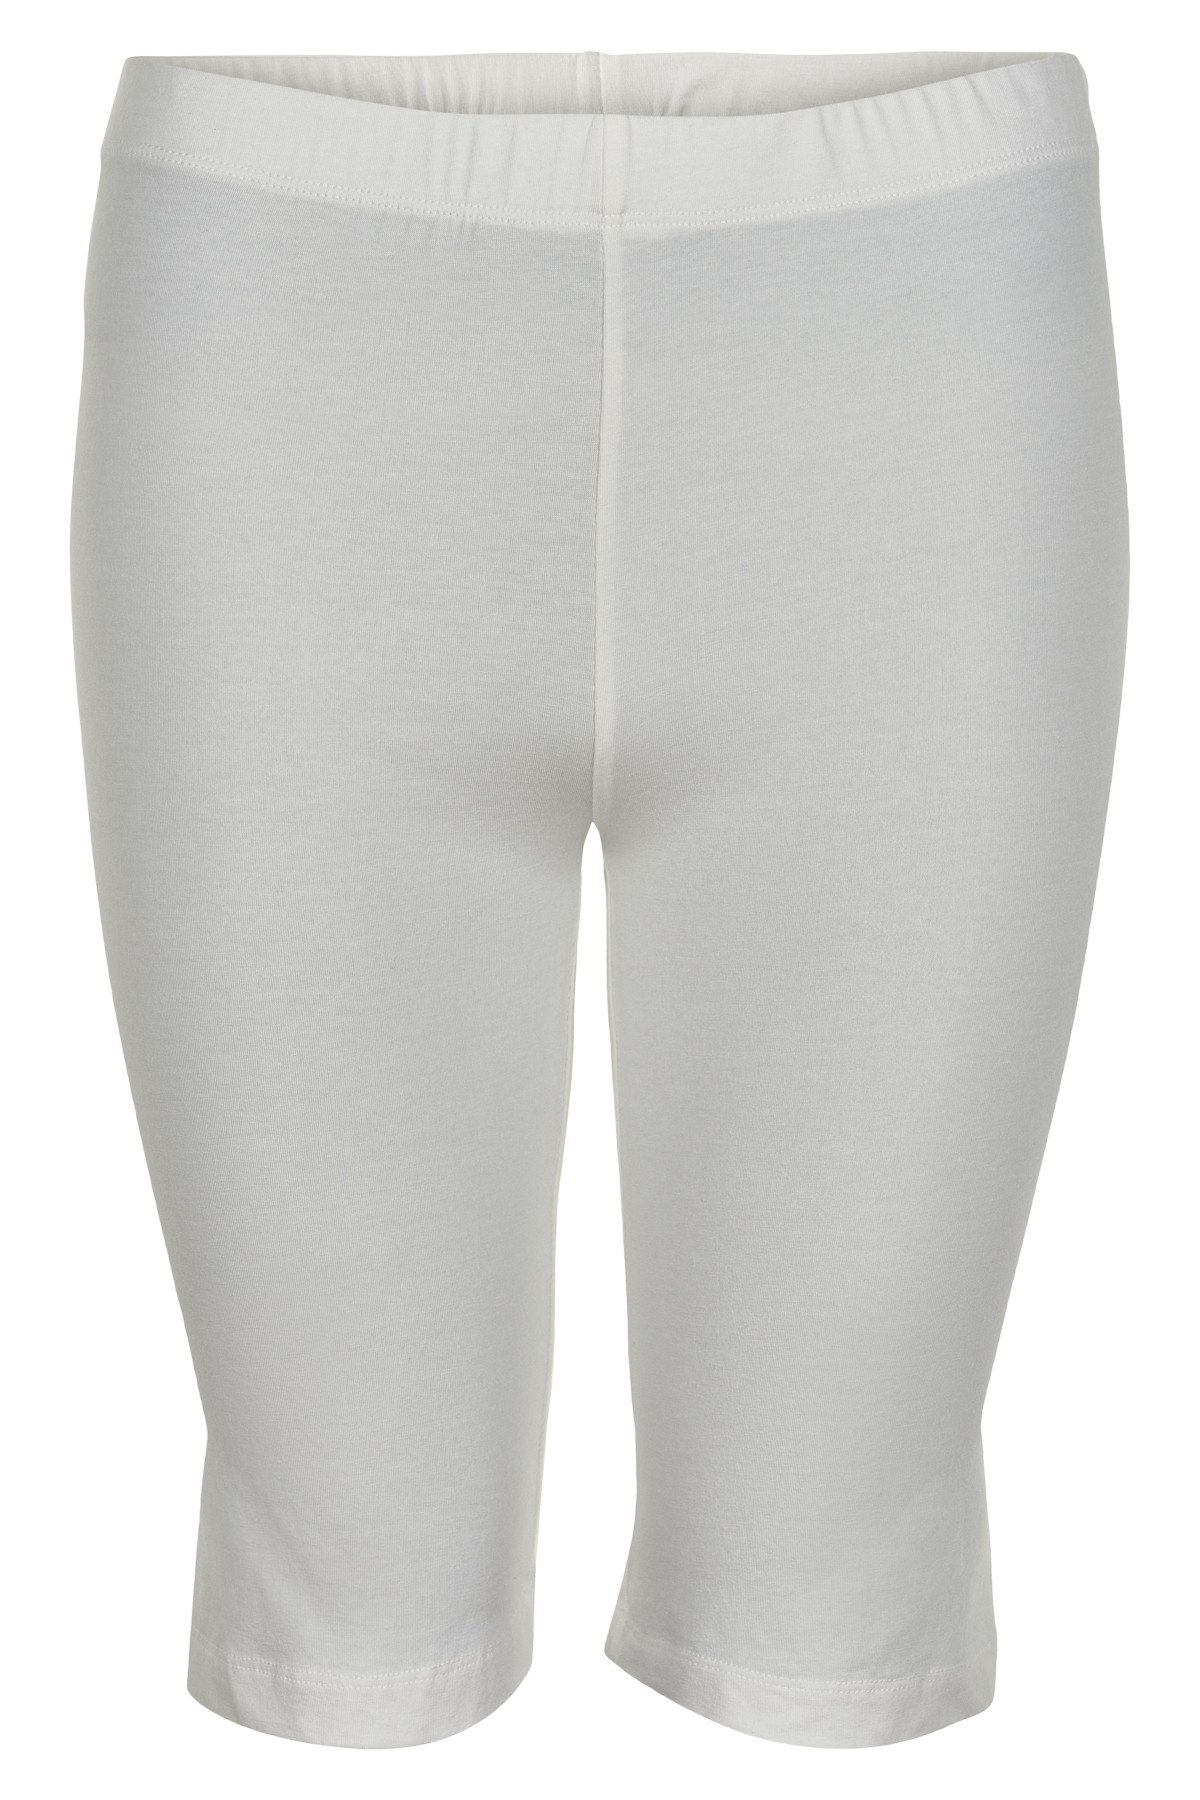 NOA NOA SHORT LEGGINGS 1-9435-2 00505 (Beige, XS)